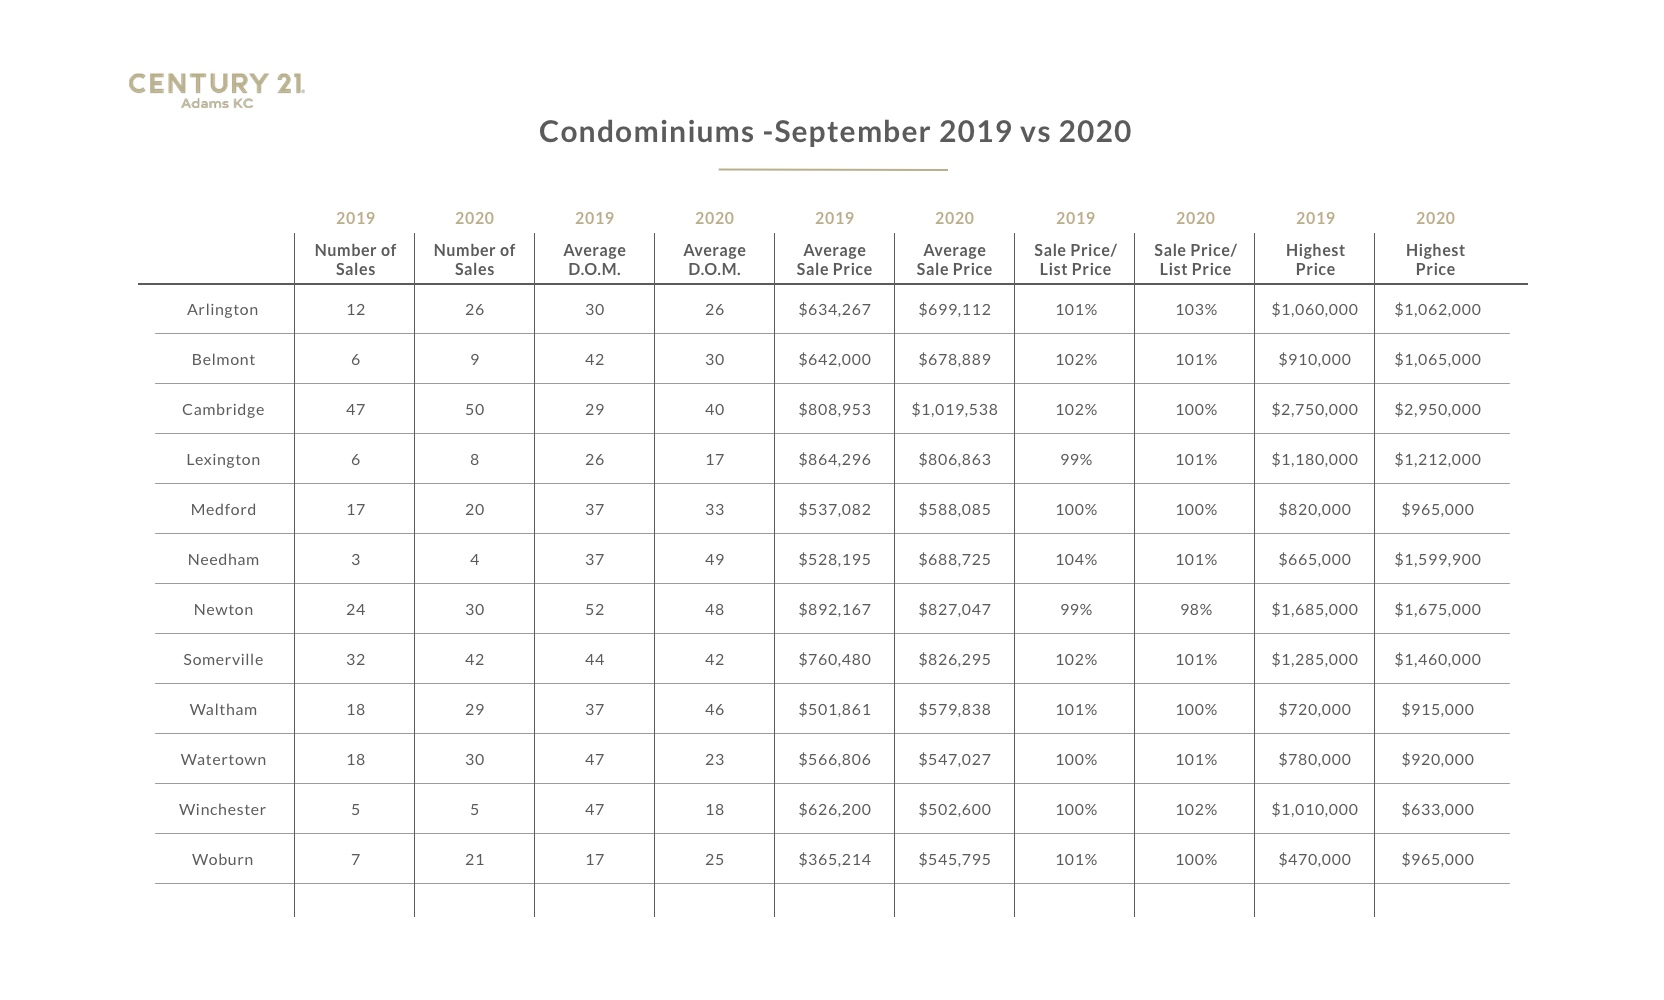 A chart with data from the 2020 Greater Boston real estate market report- condos, September 2020